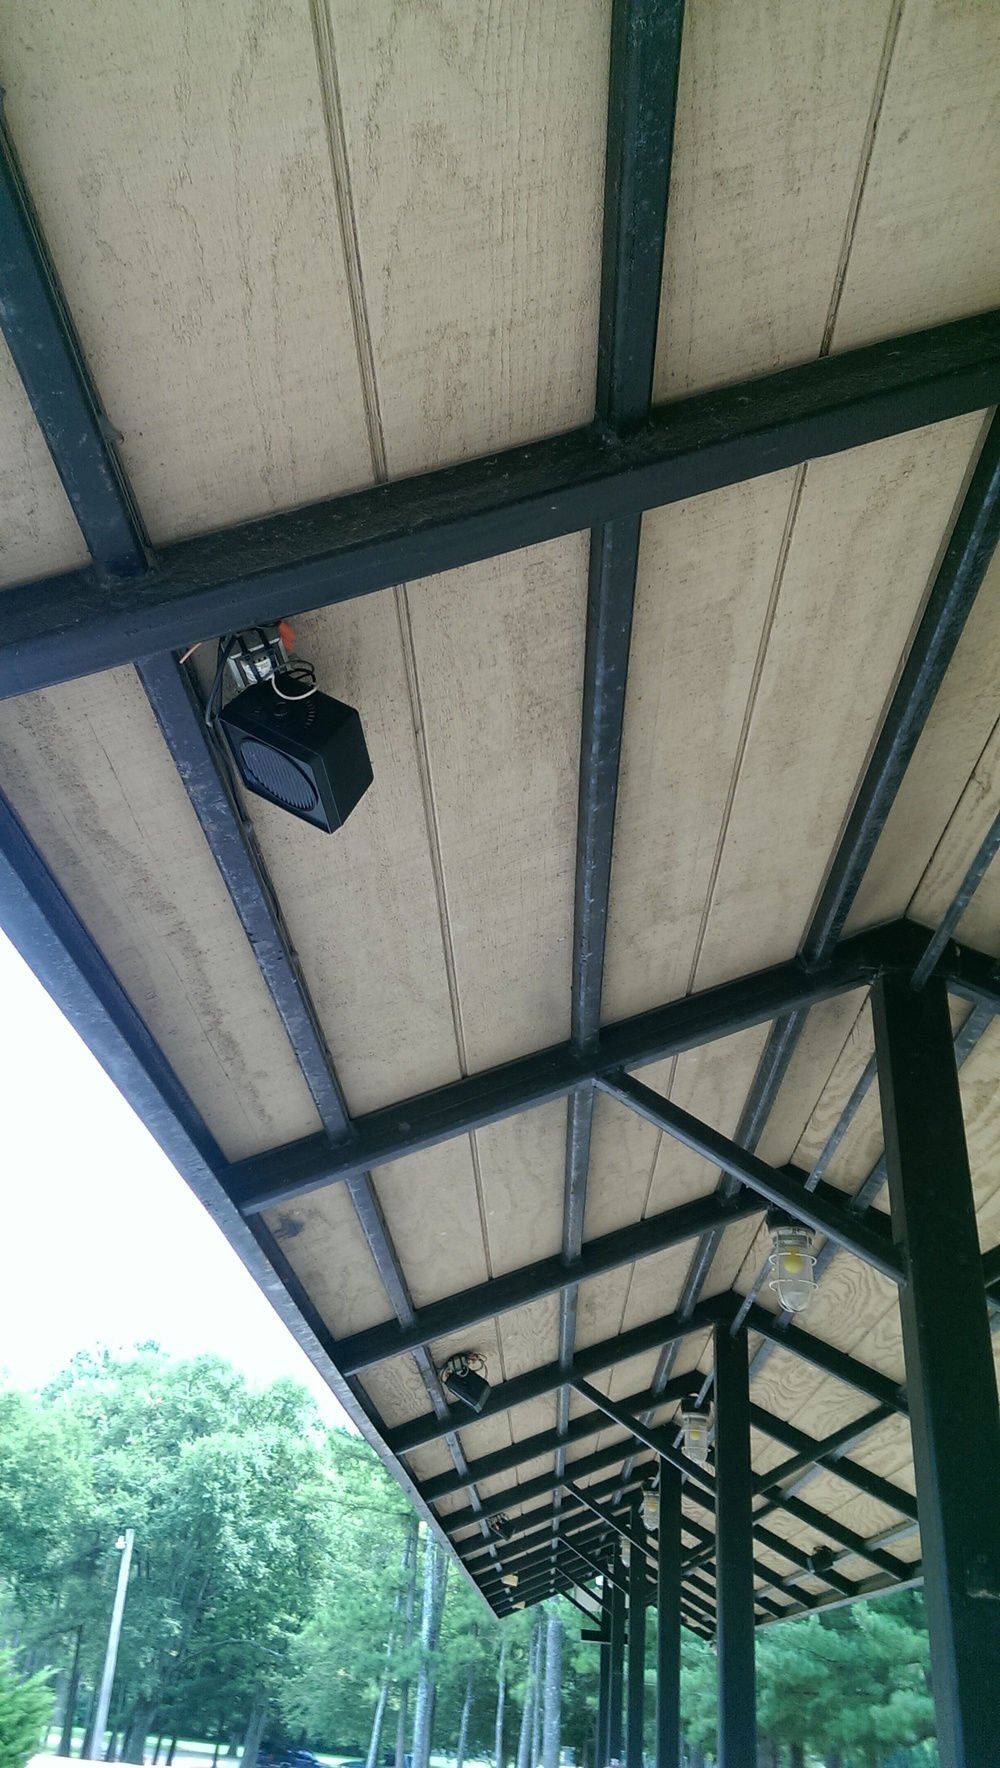 New Speakers are being installed at the passenger station. The original speakers have begun to fail or not function properly. It is hoped we can have all the new ones installed by the Fall 2012 meet.